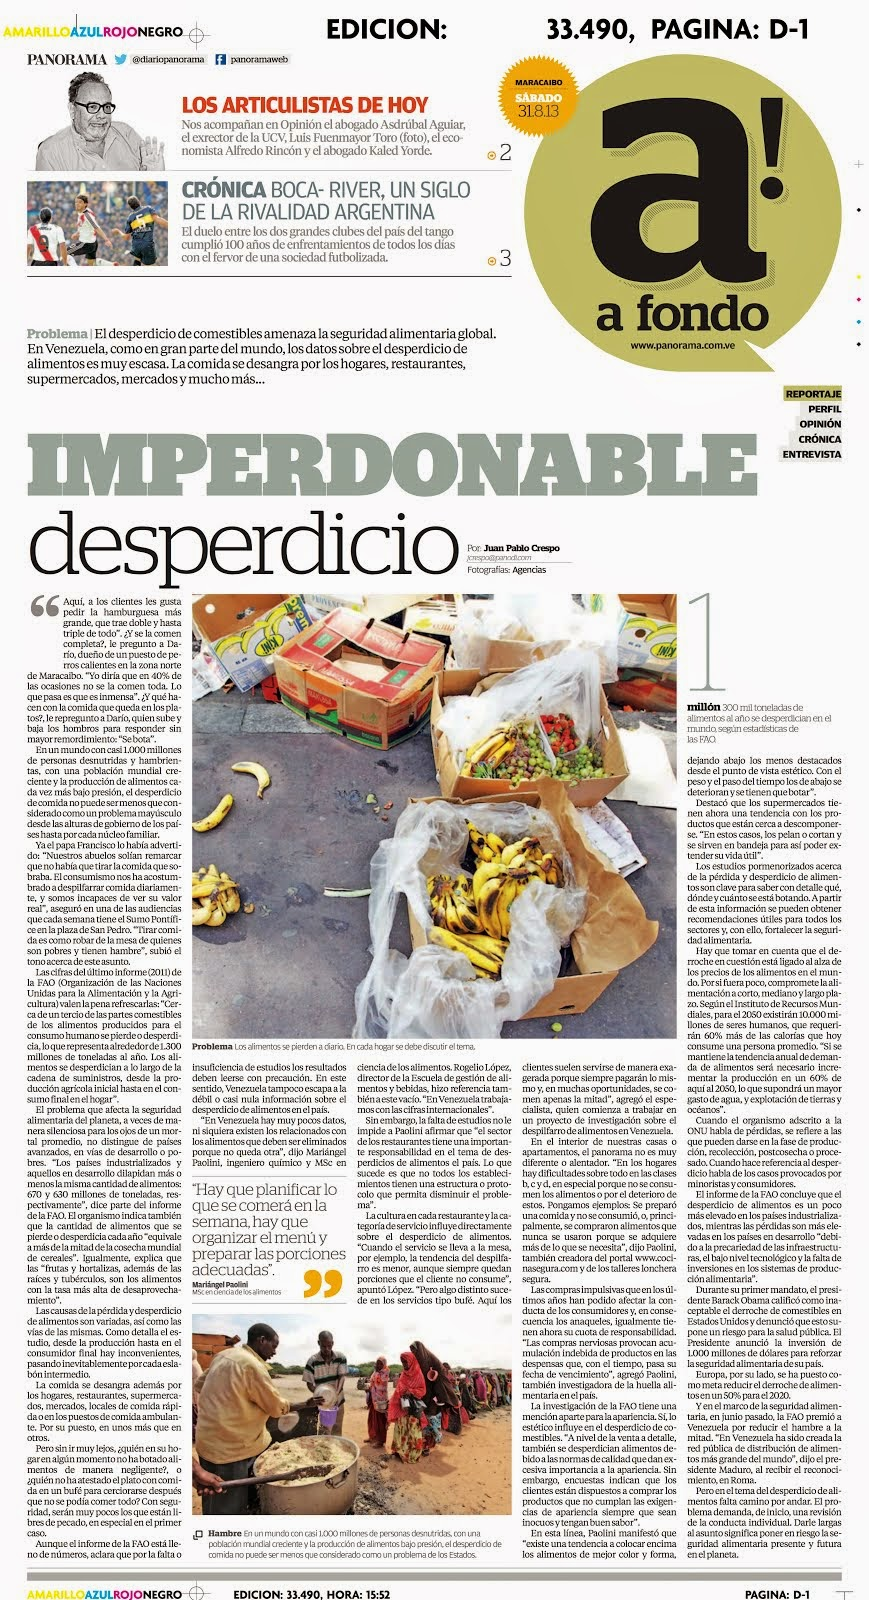 El imperdonable desperdicio